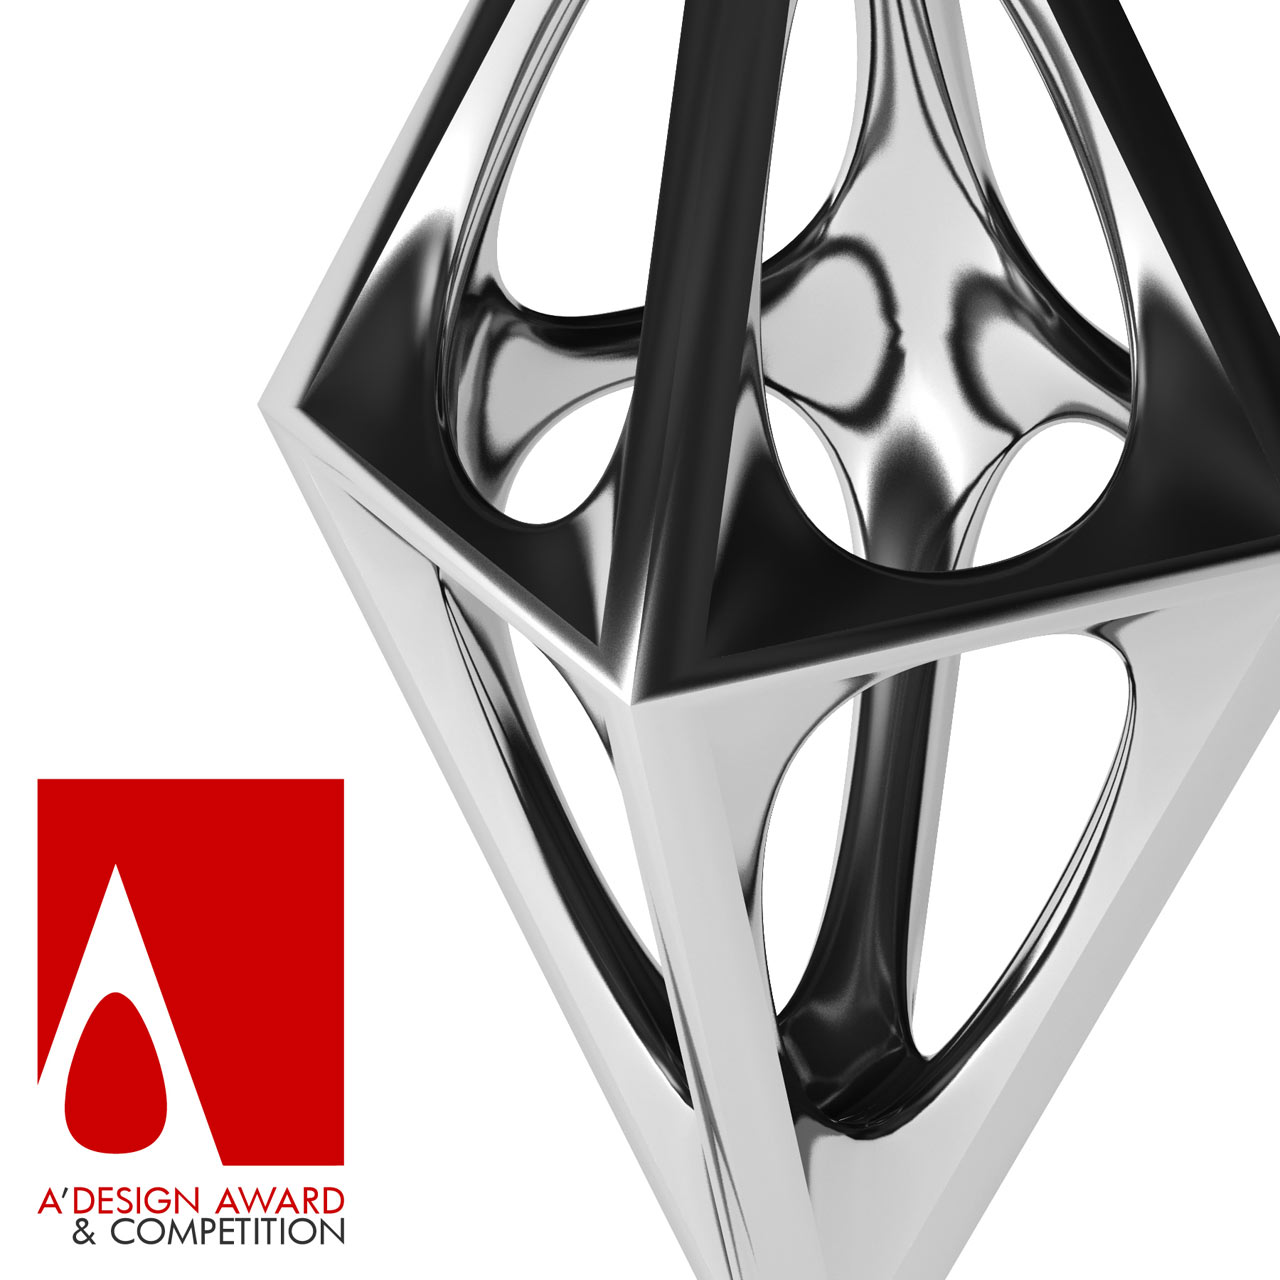 A' Design Award & Competition 2014: Call for Entries